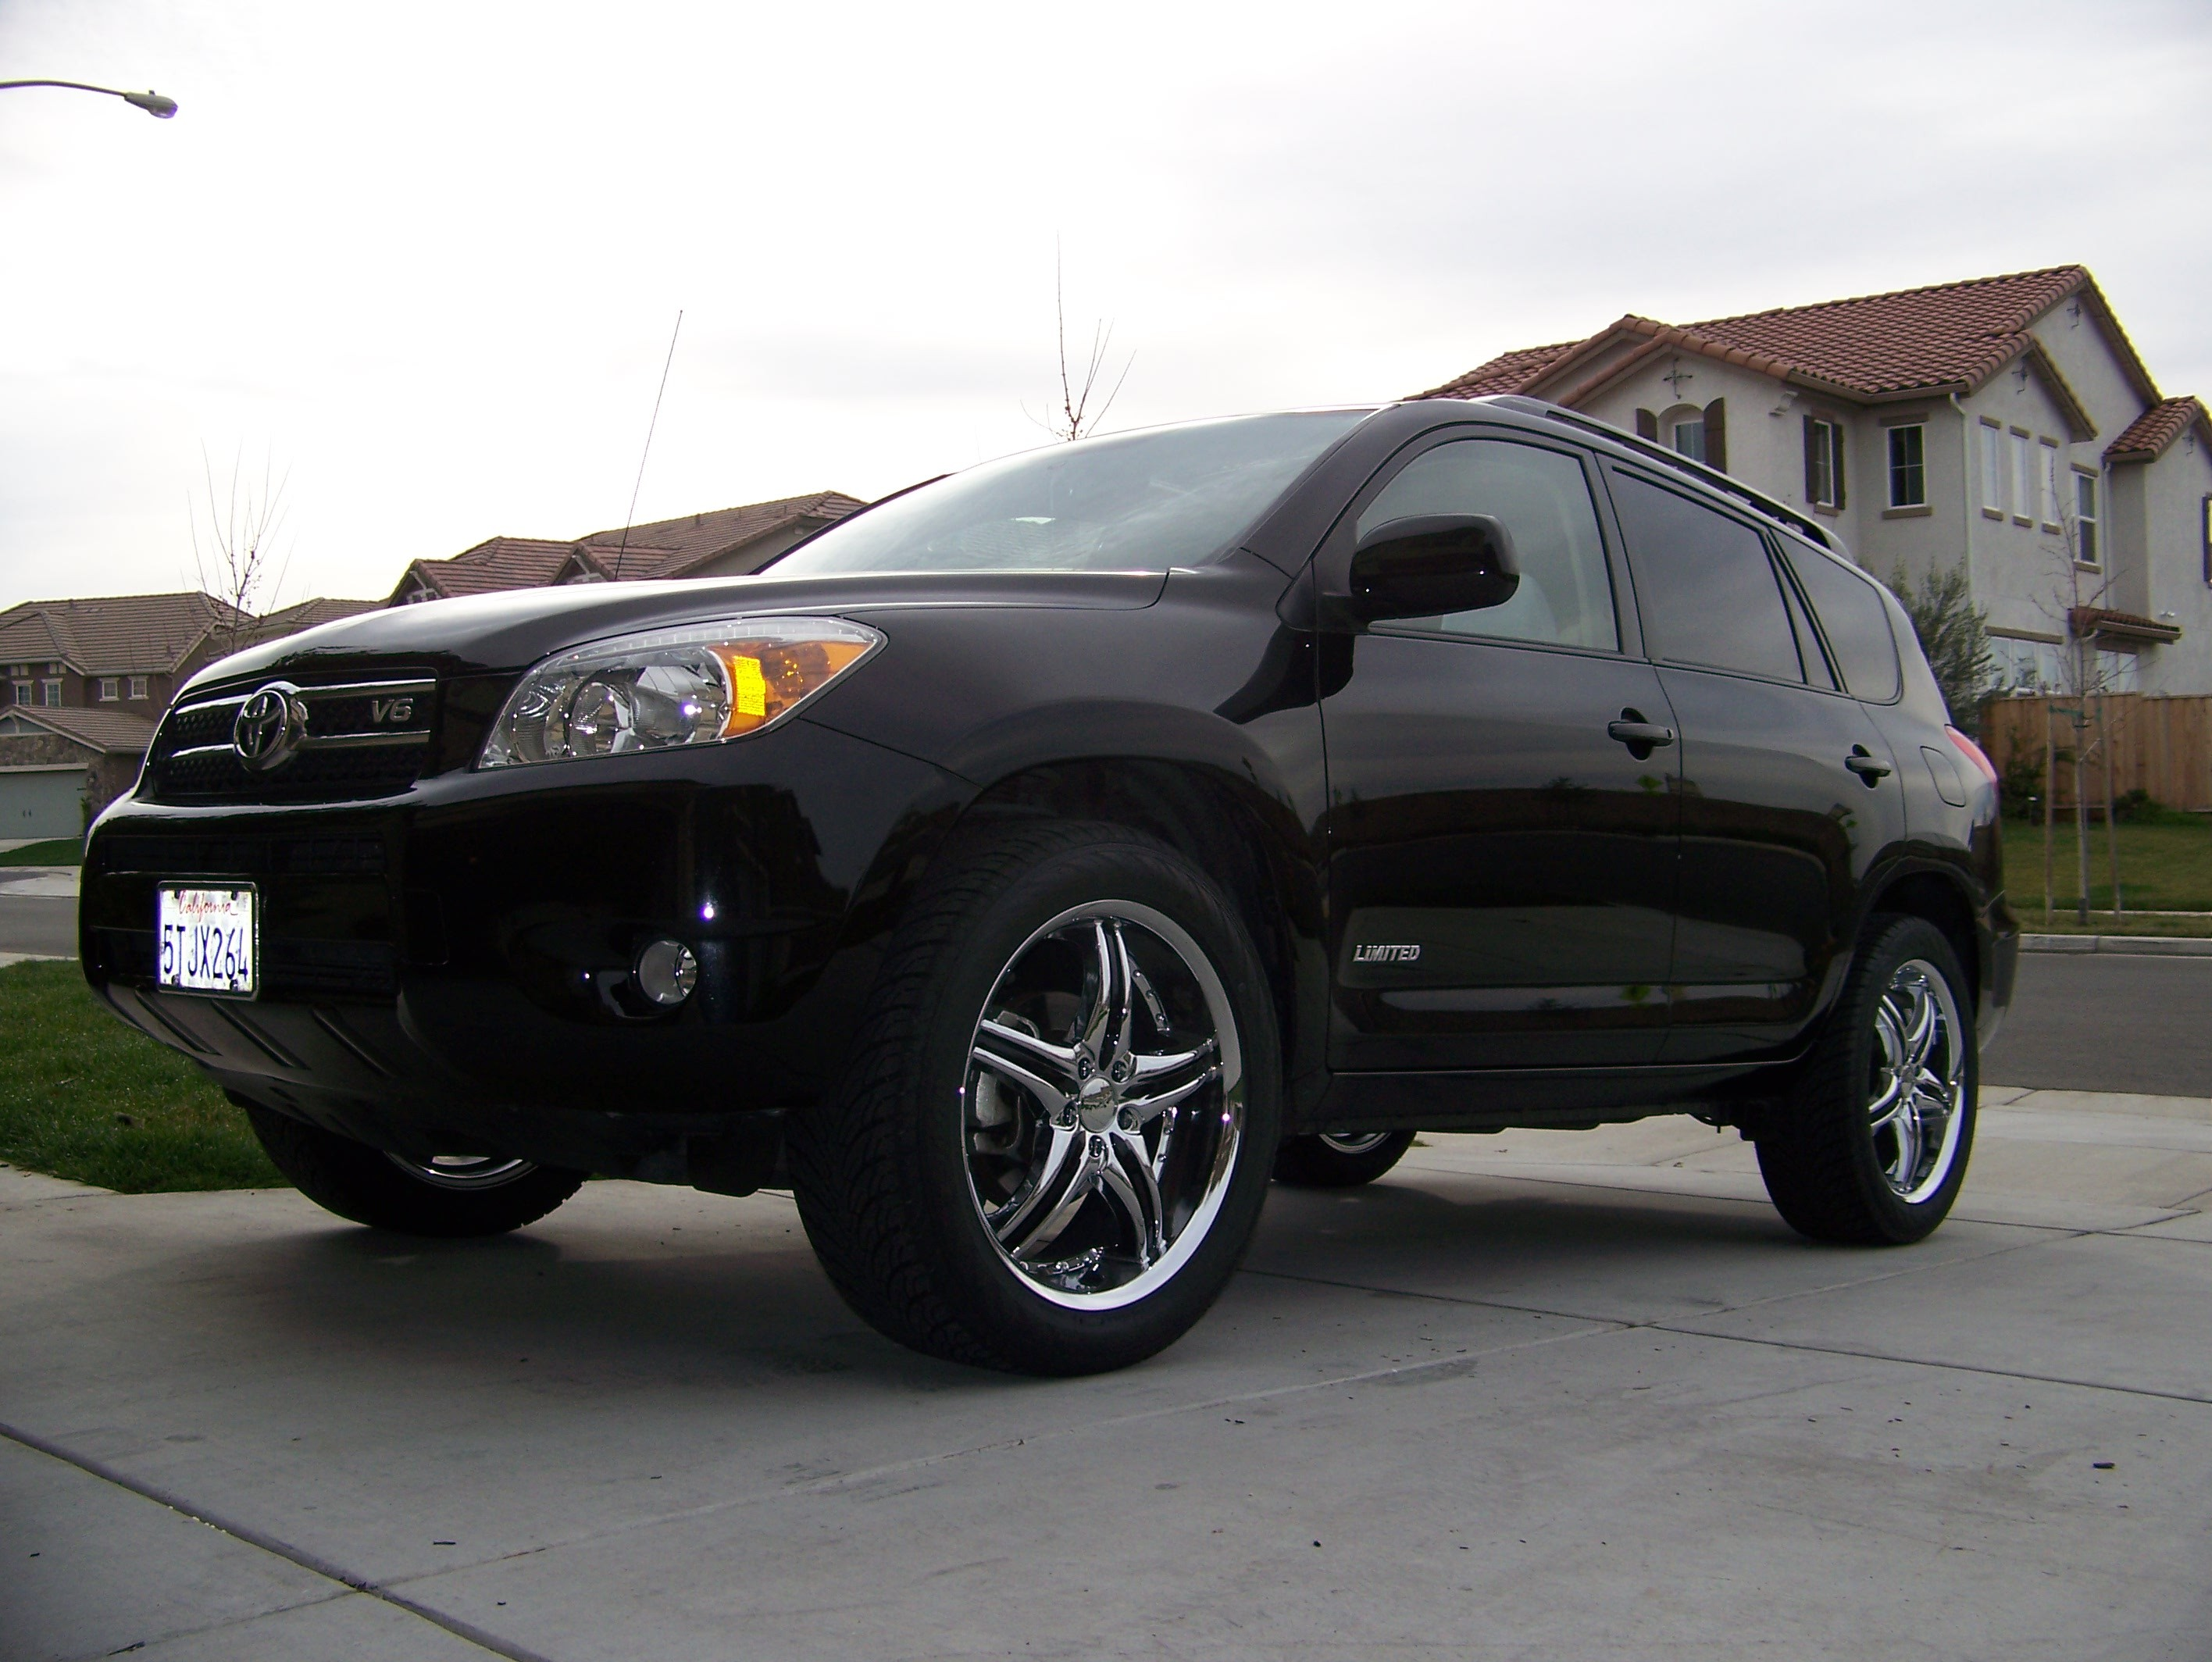 ericrav 2006 toyota rav4 specs photos modification info at cardomain. Black Bedroom Furniture Sets. Home Design Ideas